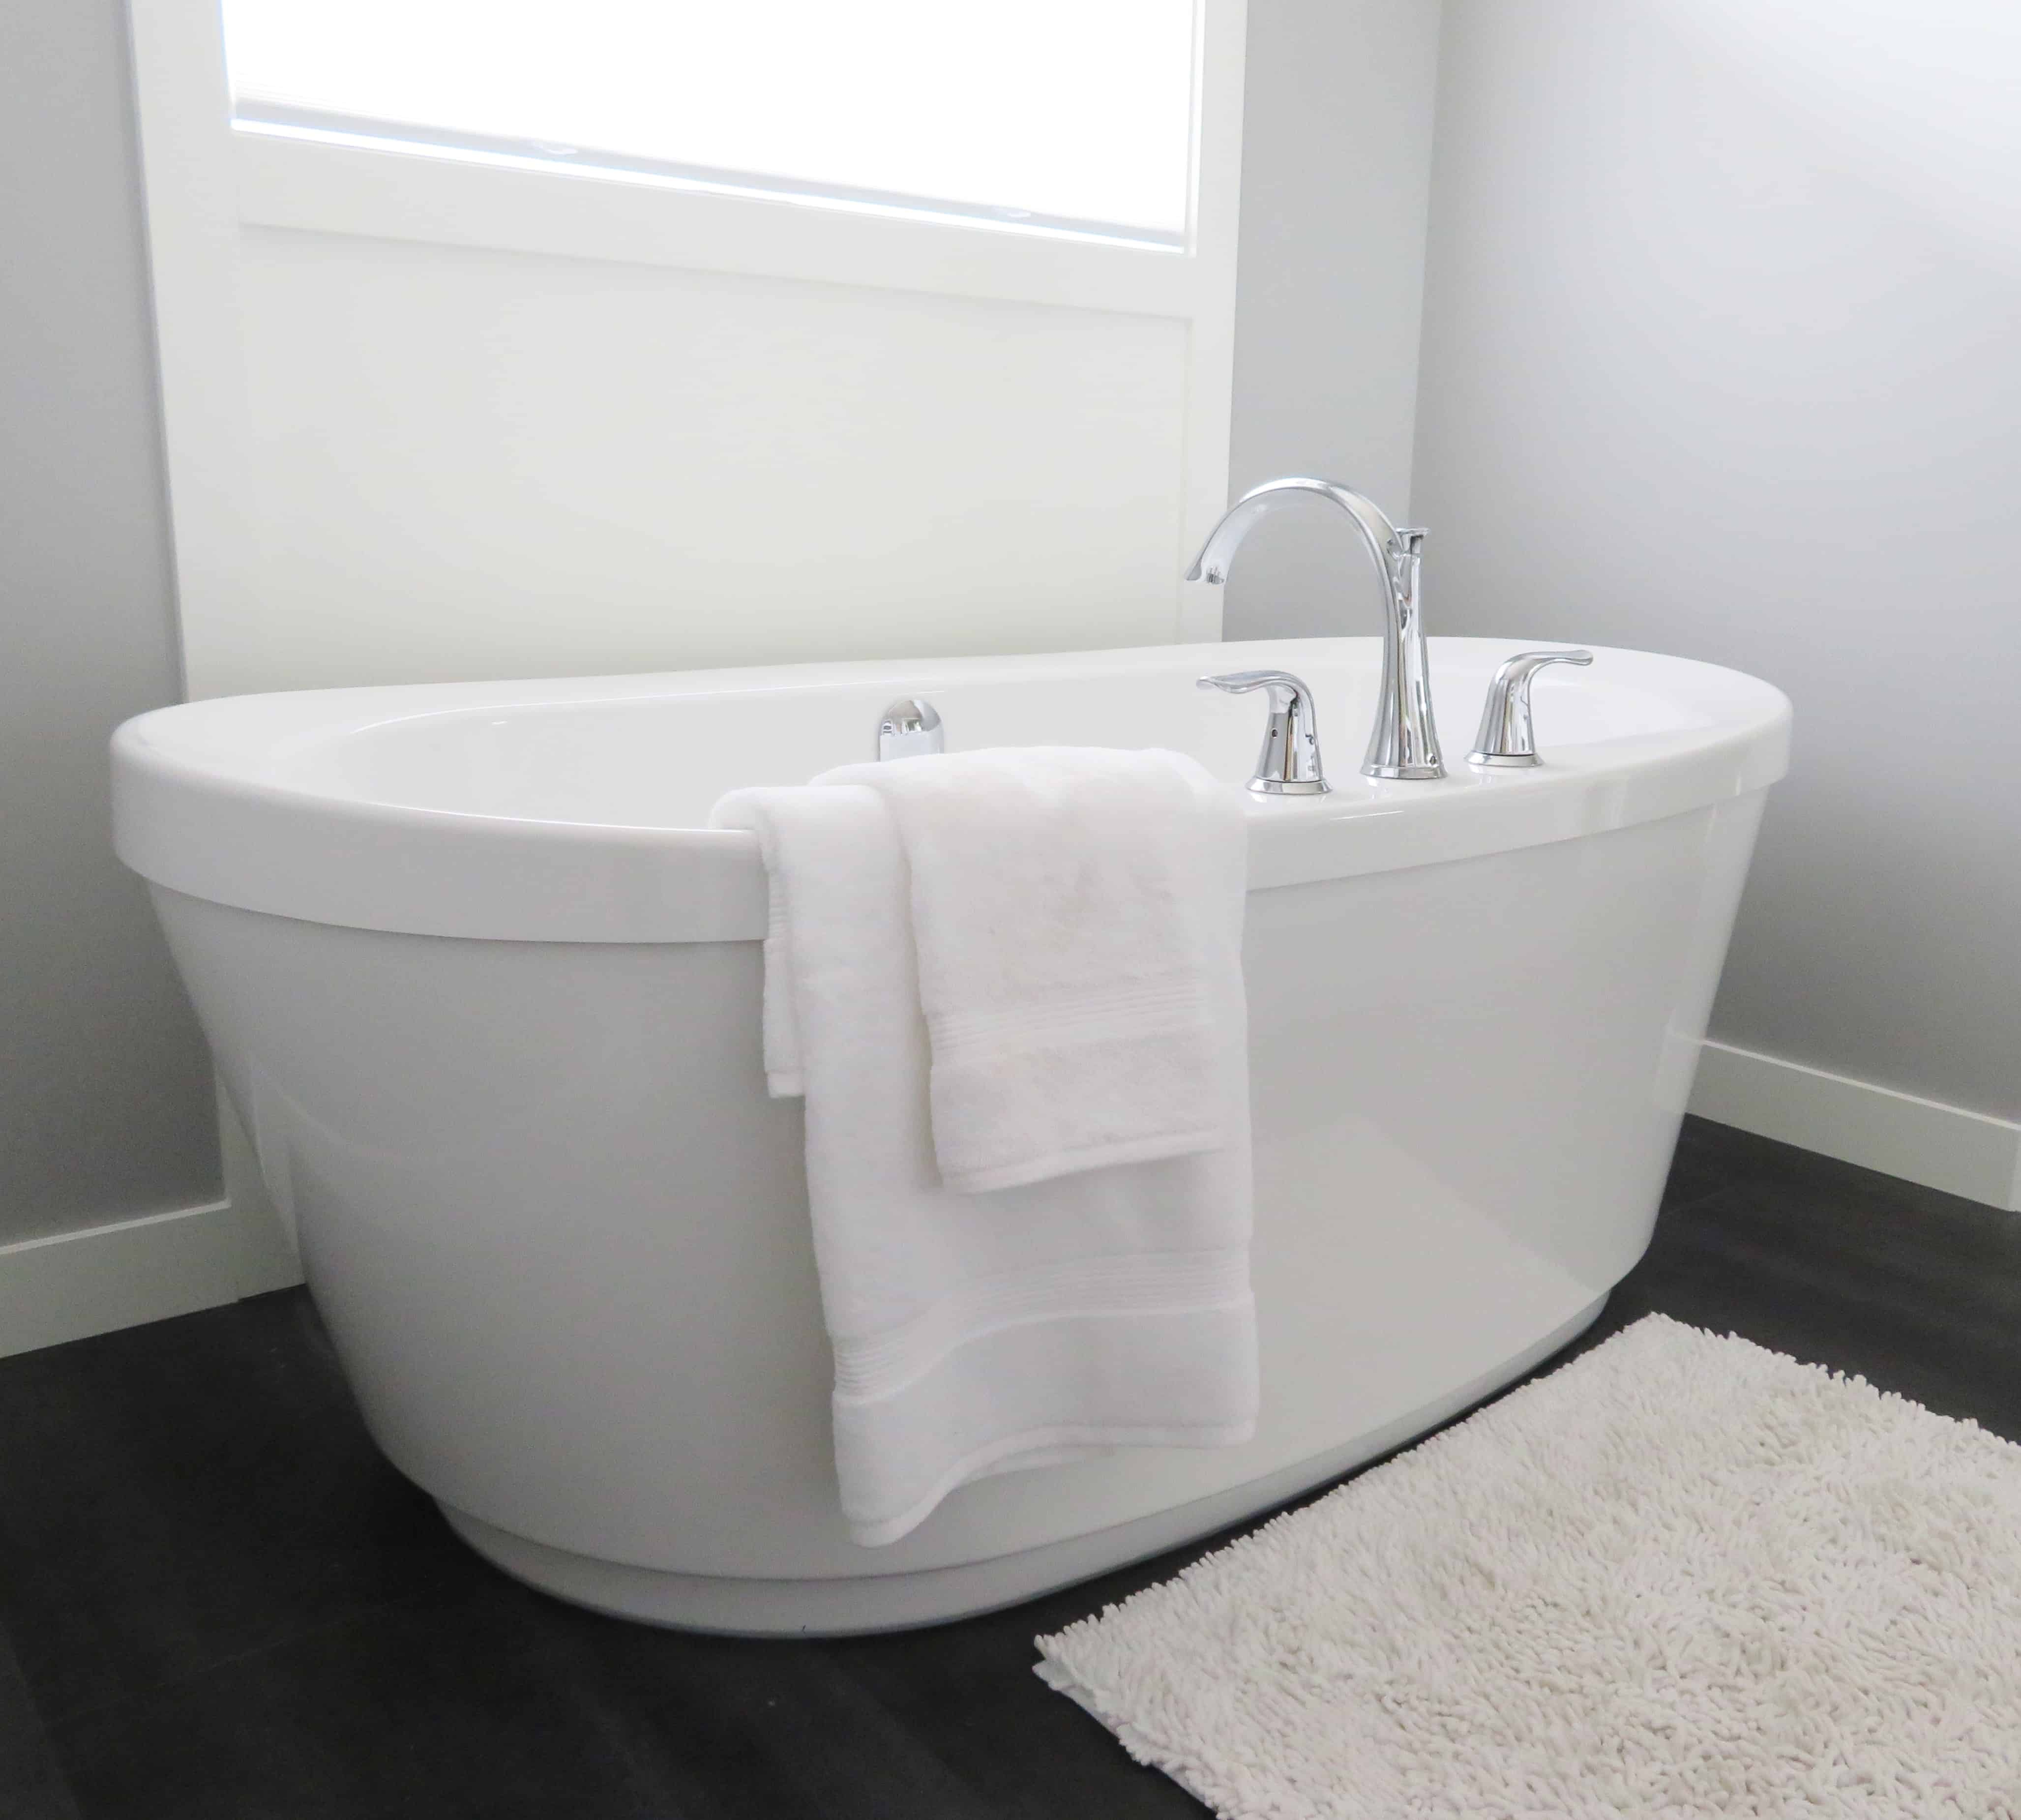 Free standing white bathtub